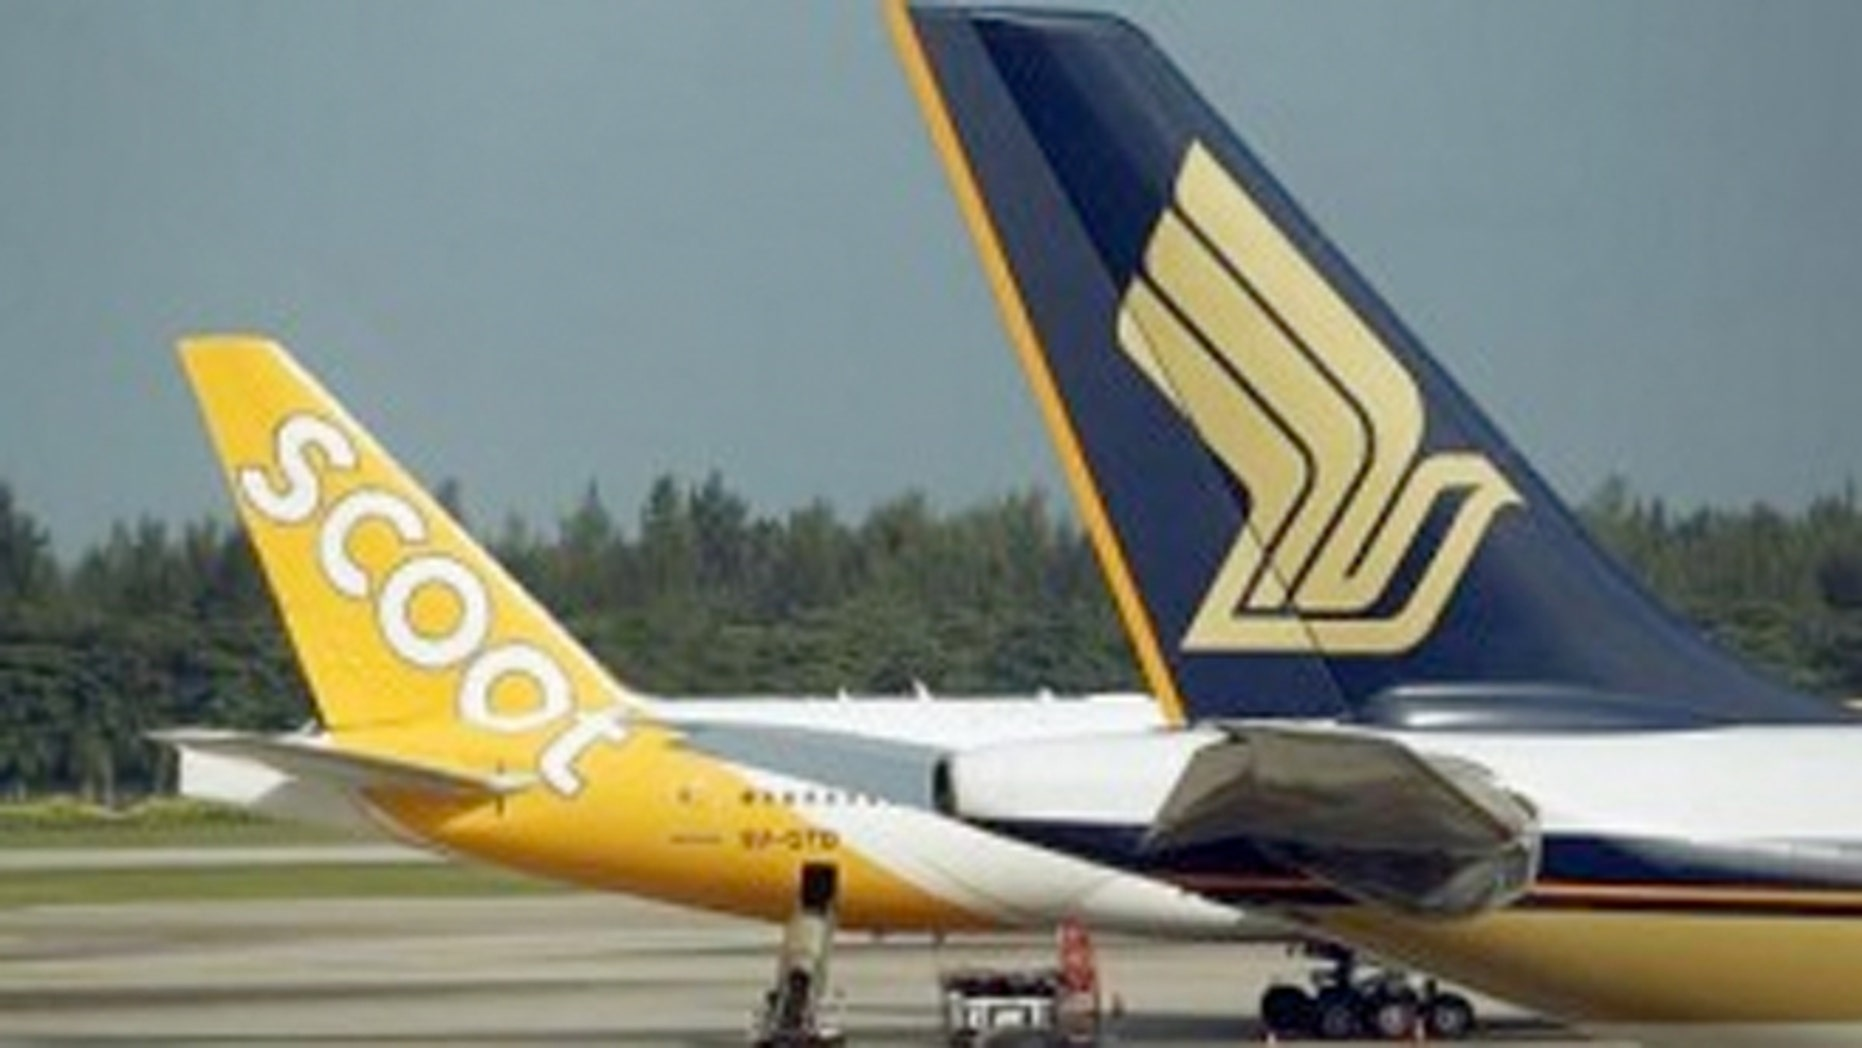 Scoot Airlines, a subsidiary of Singapore Airlines, is offering a child-free cabin for an extra $14.